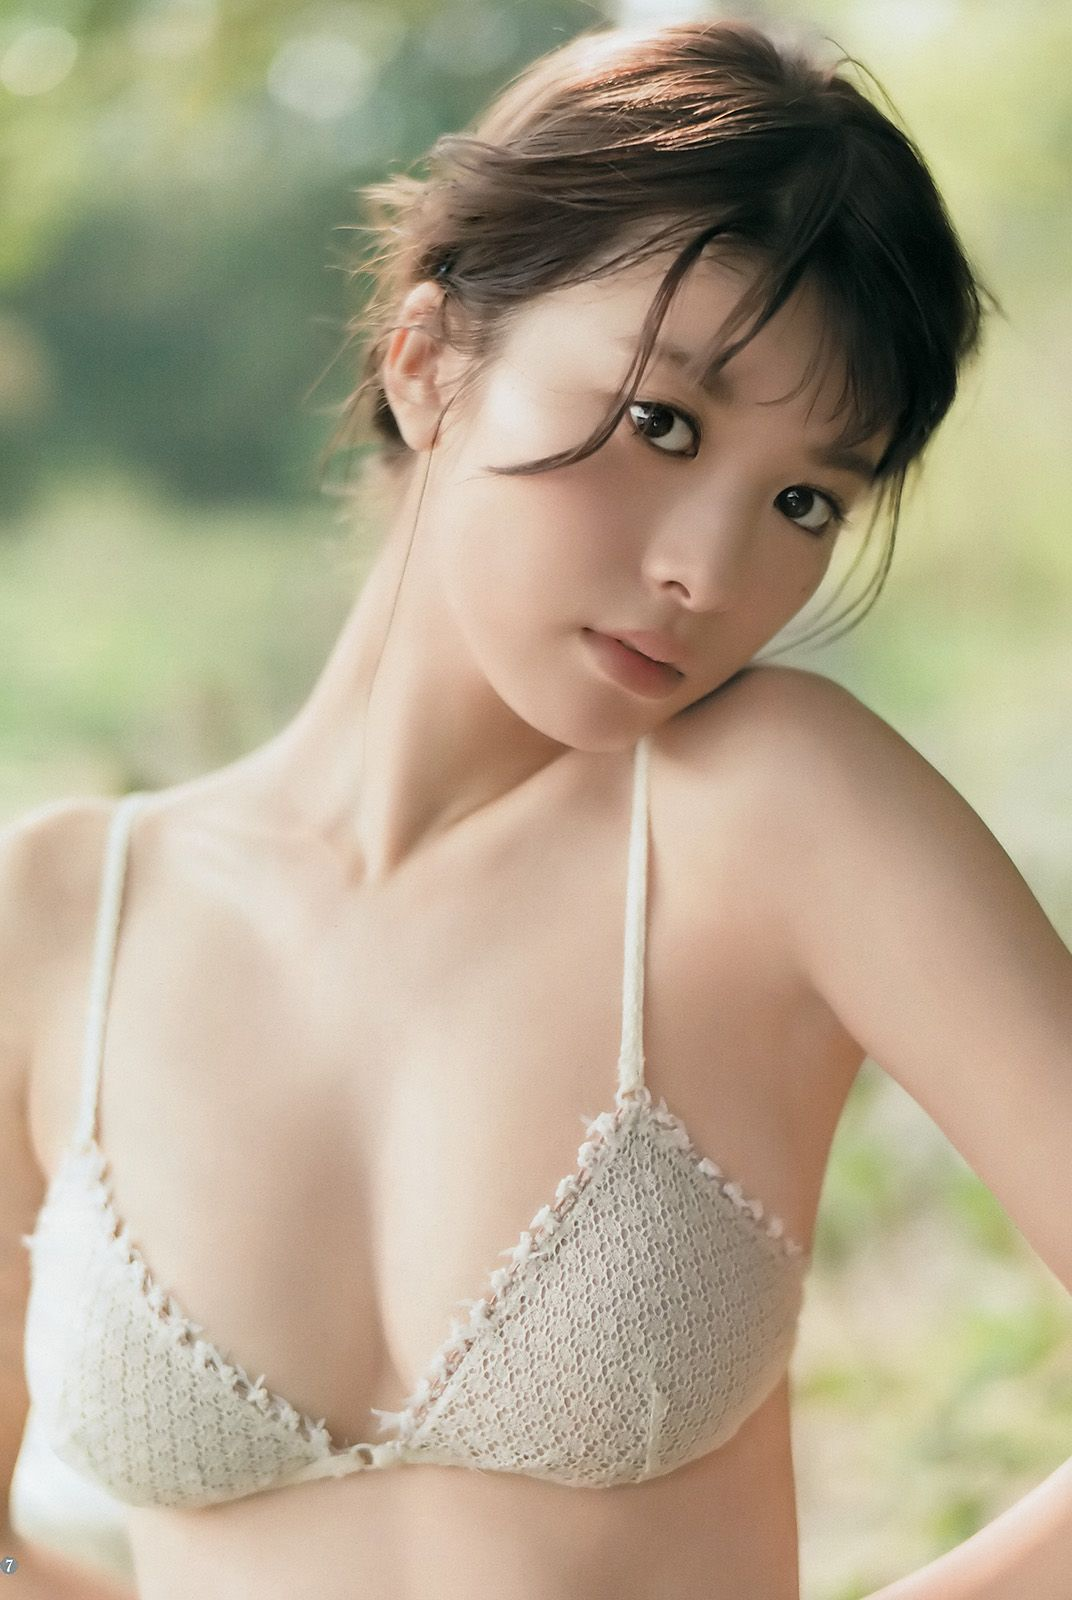 Fumika Baba Pictures pin on asian hottie